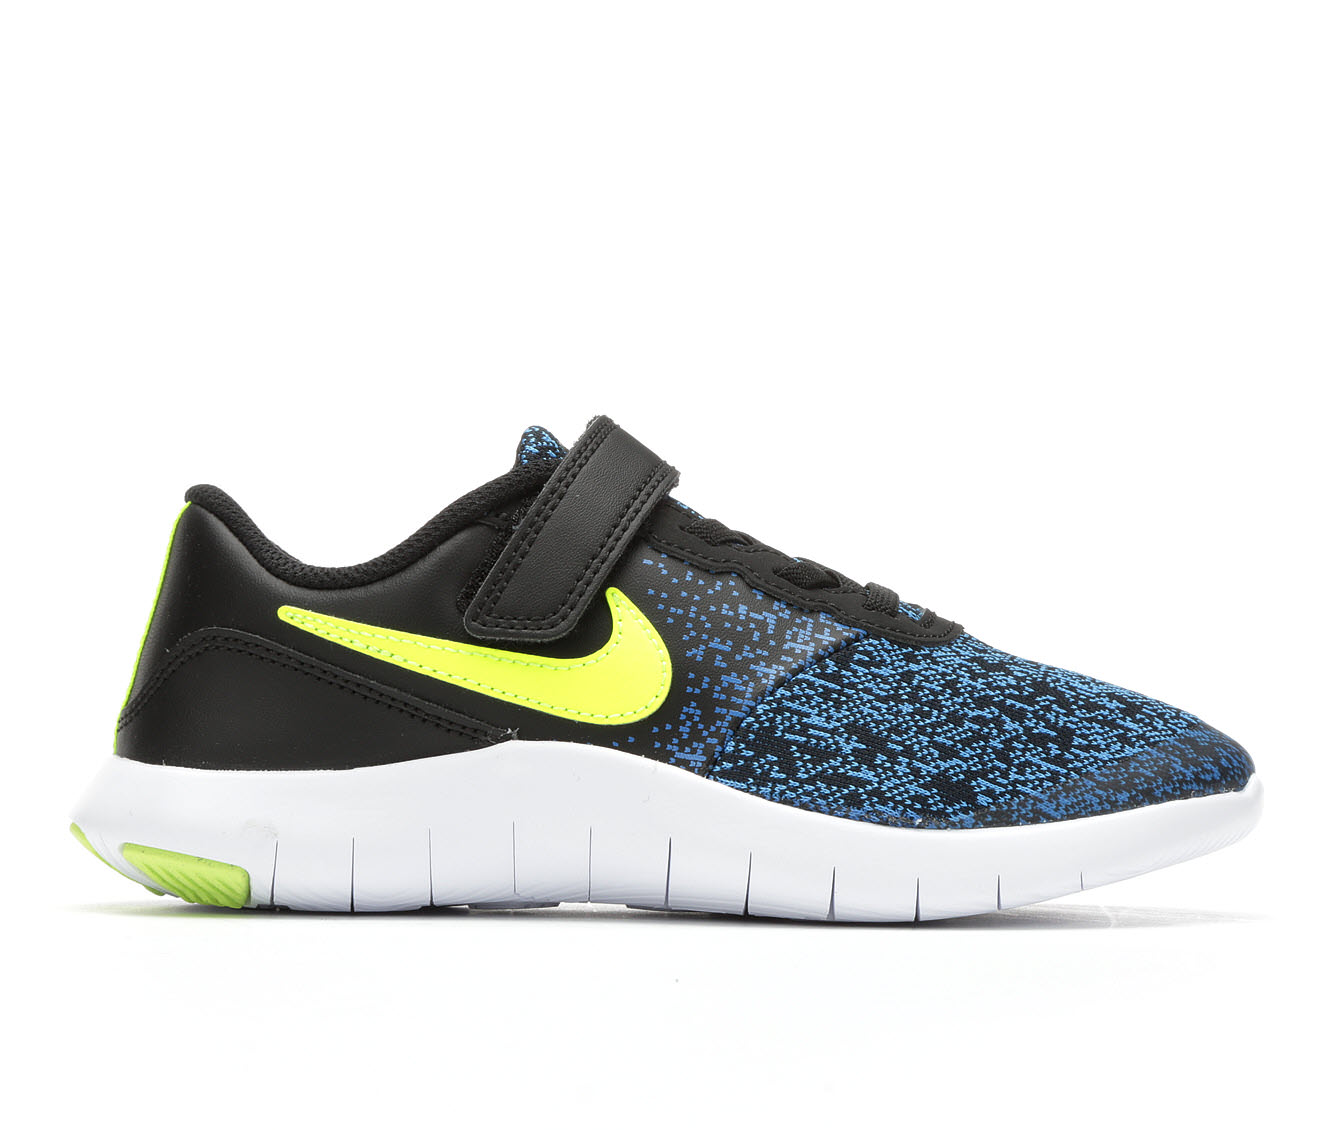 Boys' Nike Flex Contact Velcro Running Shoes (Blue)